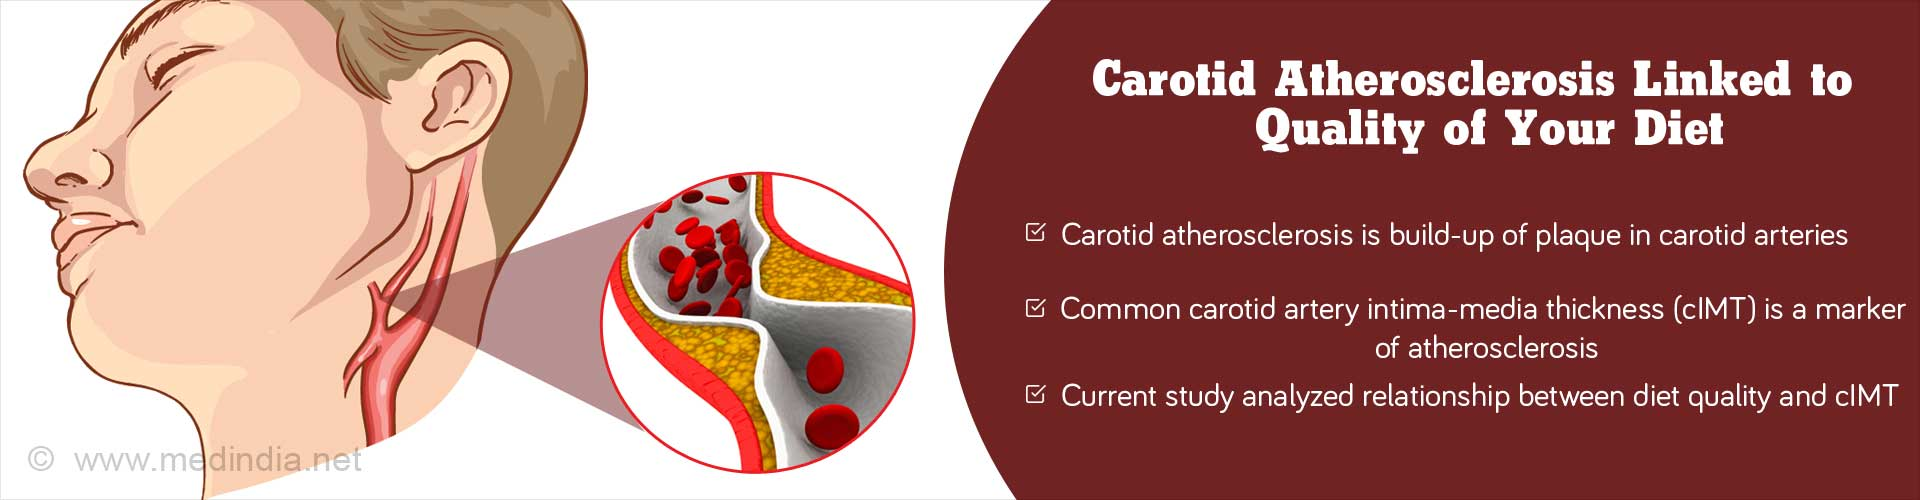 Carotid atherosclerosis linked to quality of your diet